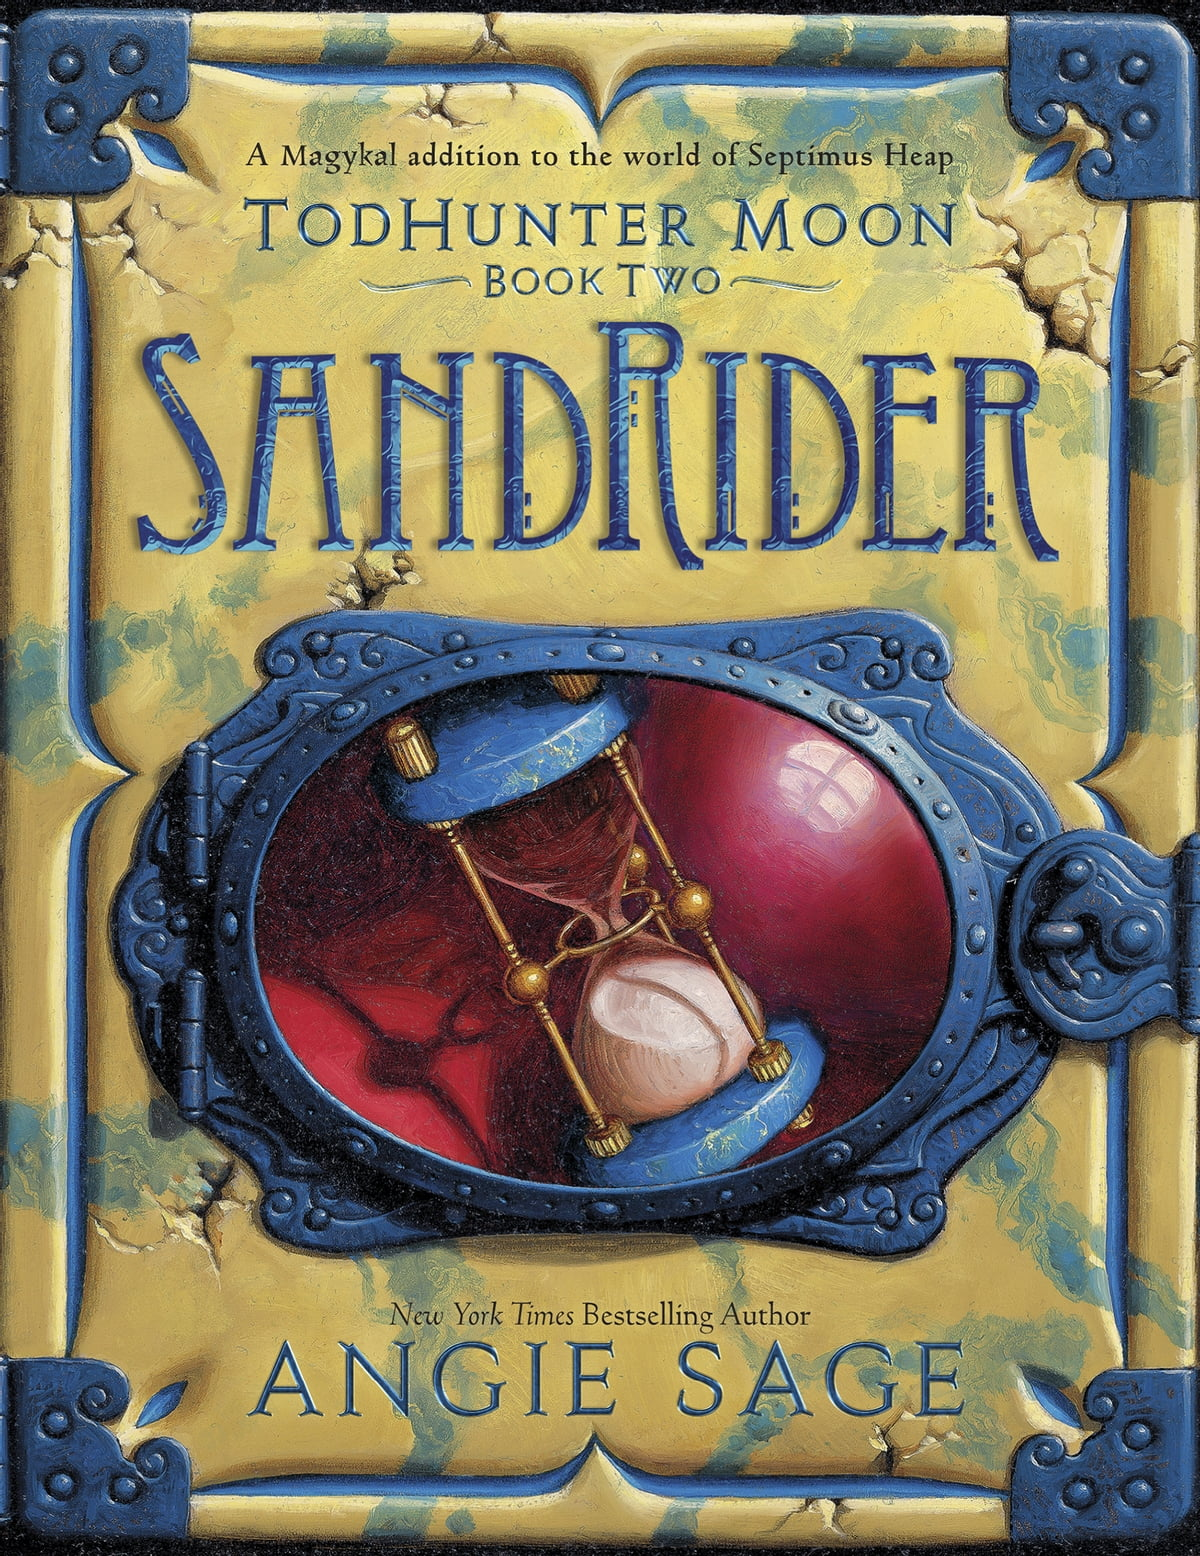 Lockwood co the creeping shadow ebook by jonathan stroud todhunter moon book two sandrider ebook by angie sage mark zug fandeluxe Ebook collections